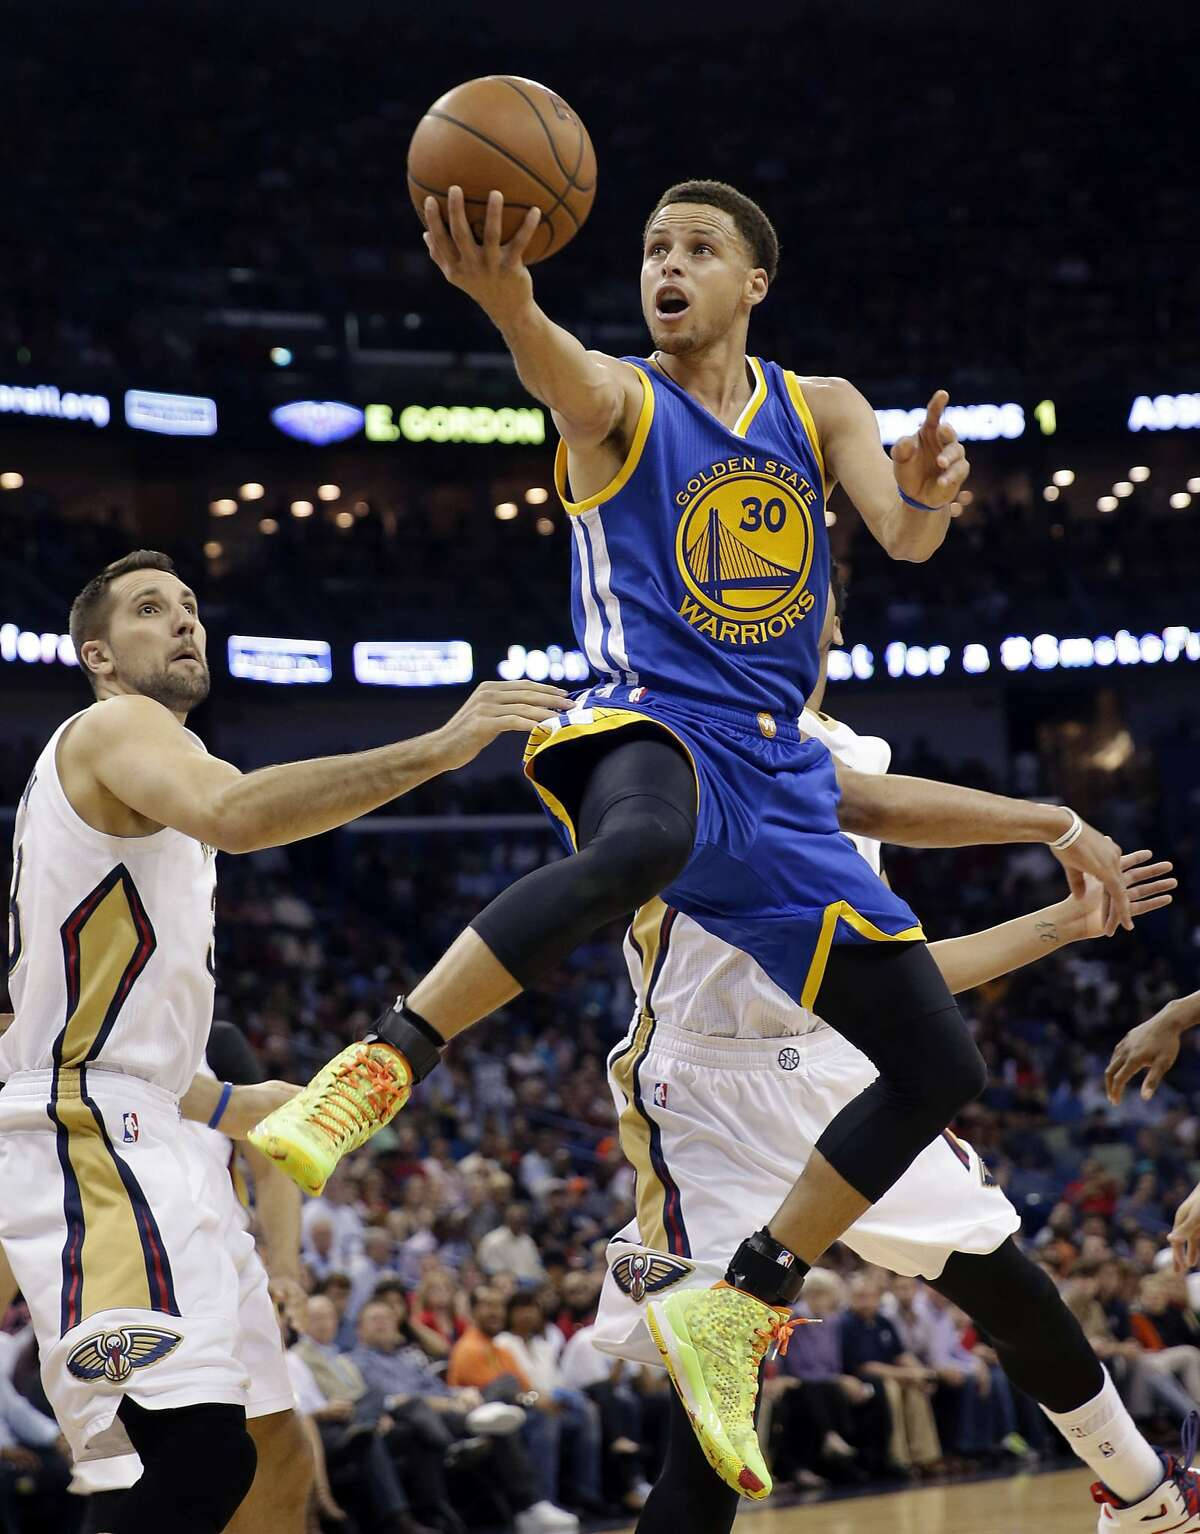 FILE - In this April 7, 2015, file photo, Golden State Warriors guard Stephen Curry (30) drives to the basket in front of New Orleans Pelicans forward Ryan Anderson in the first half of an NBA basketball game in New Orleans. Curry has been named The Associated Press 2015 Male Athlete of the Year. (AP Photo/Gerald Herbert, File)